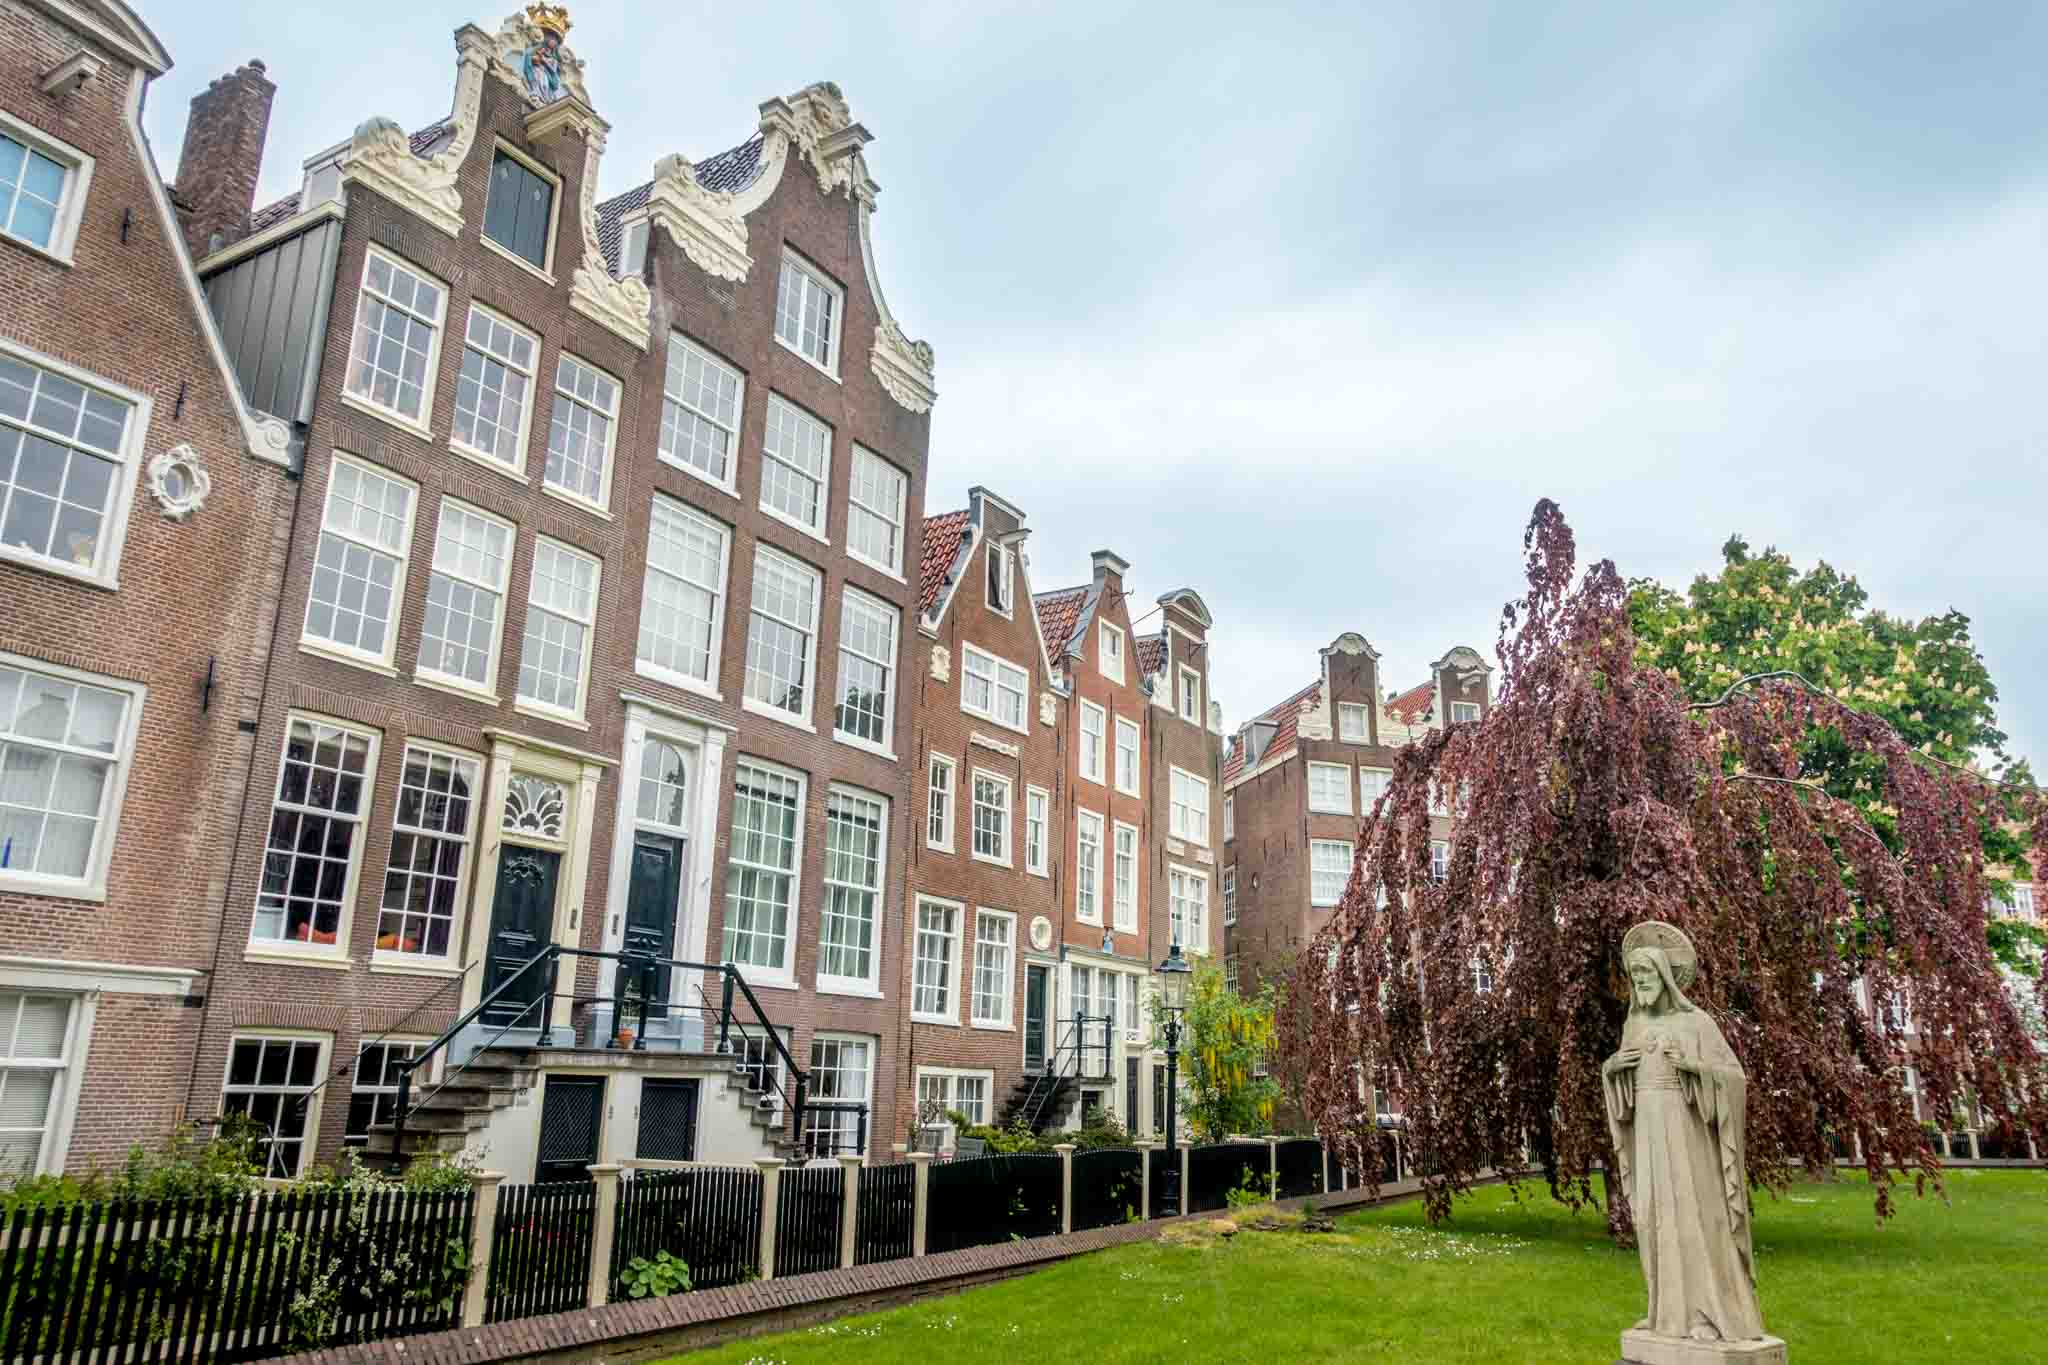 The Begijnhof, a courtyard surrounded by 16th-century Dutch townhouses, is one of the interesting places to see when visiting Amsterdam